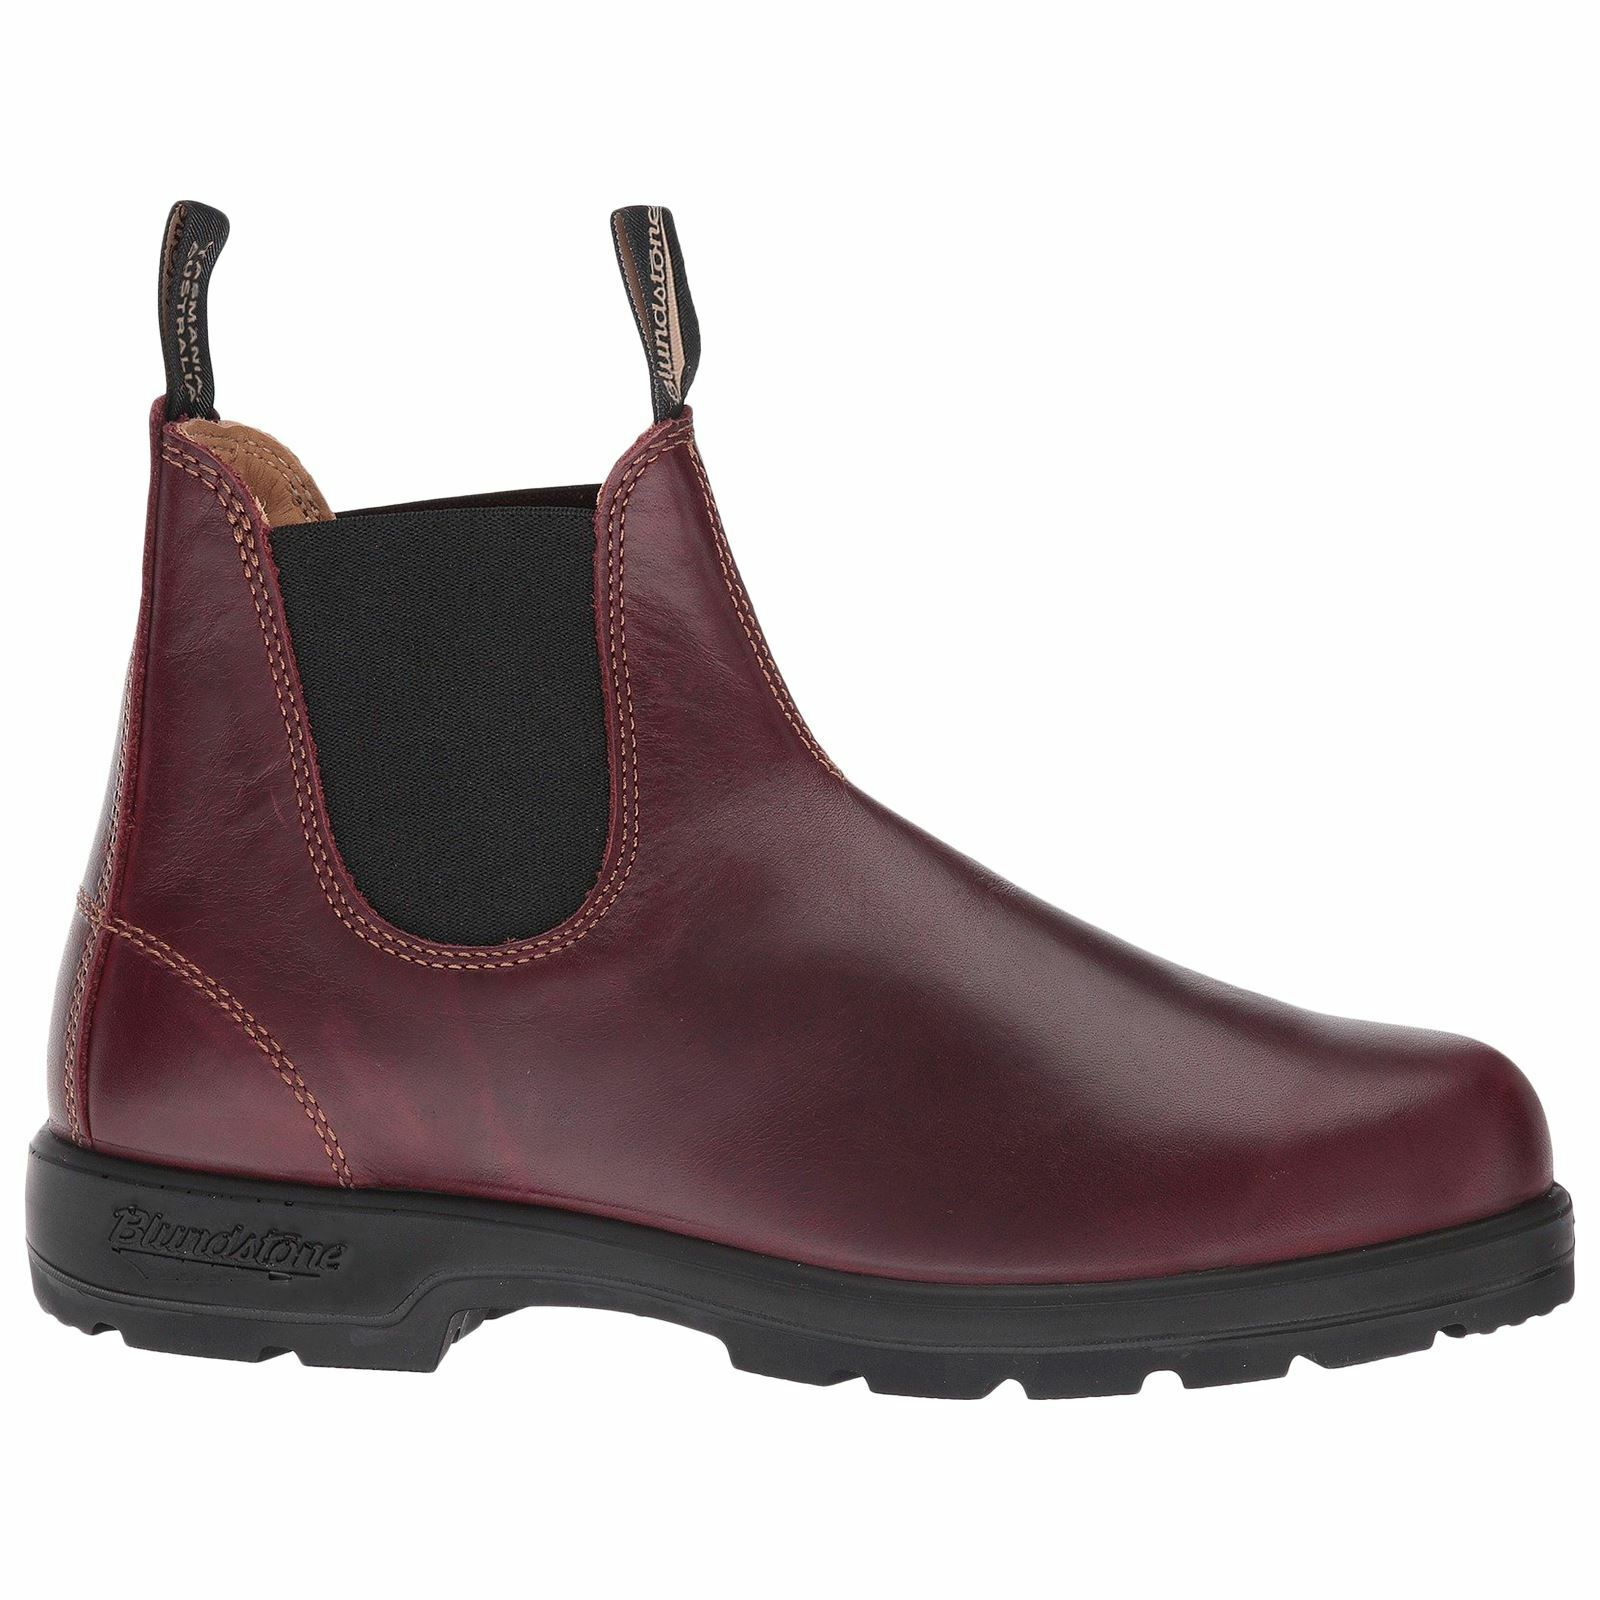 Blundstone 1440 ROTwood Mens Leder Slip-on Classic Chelsea Ankle Stiefel